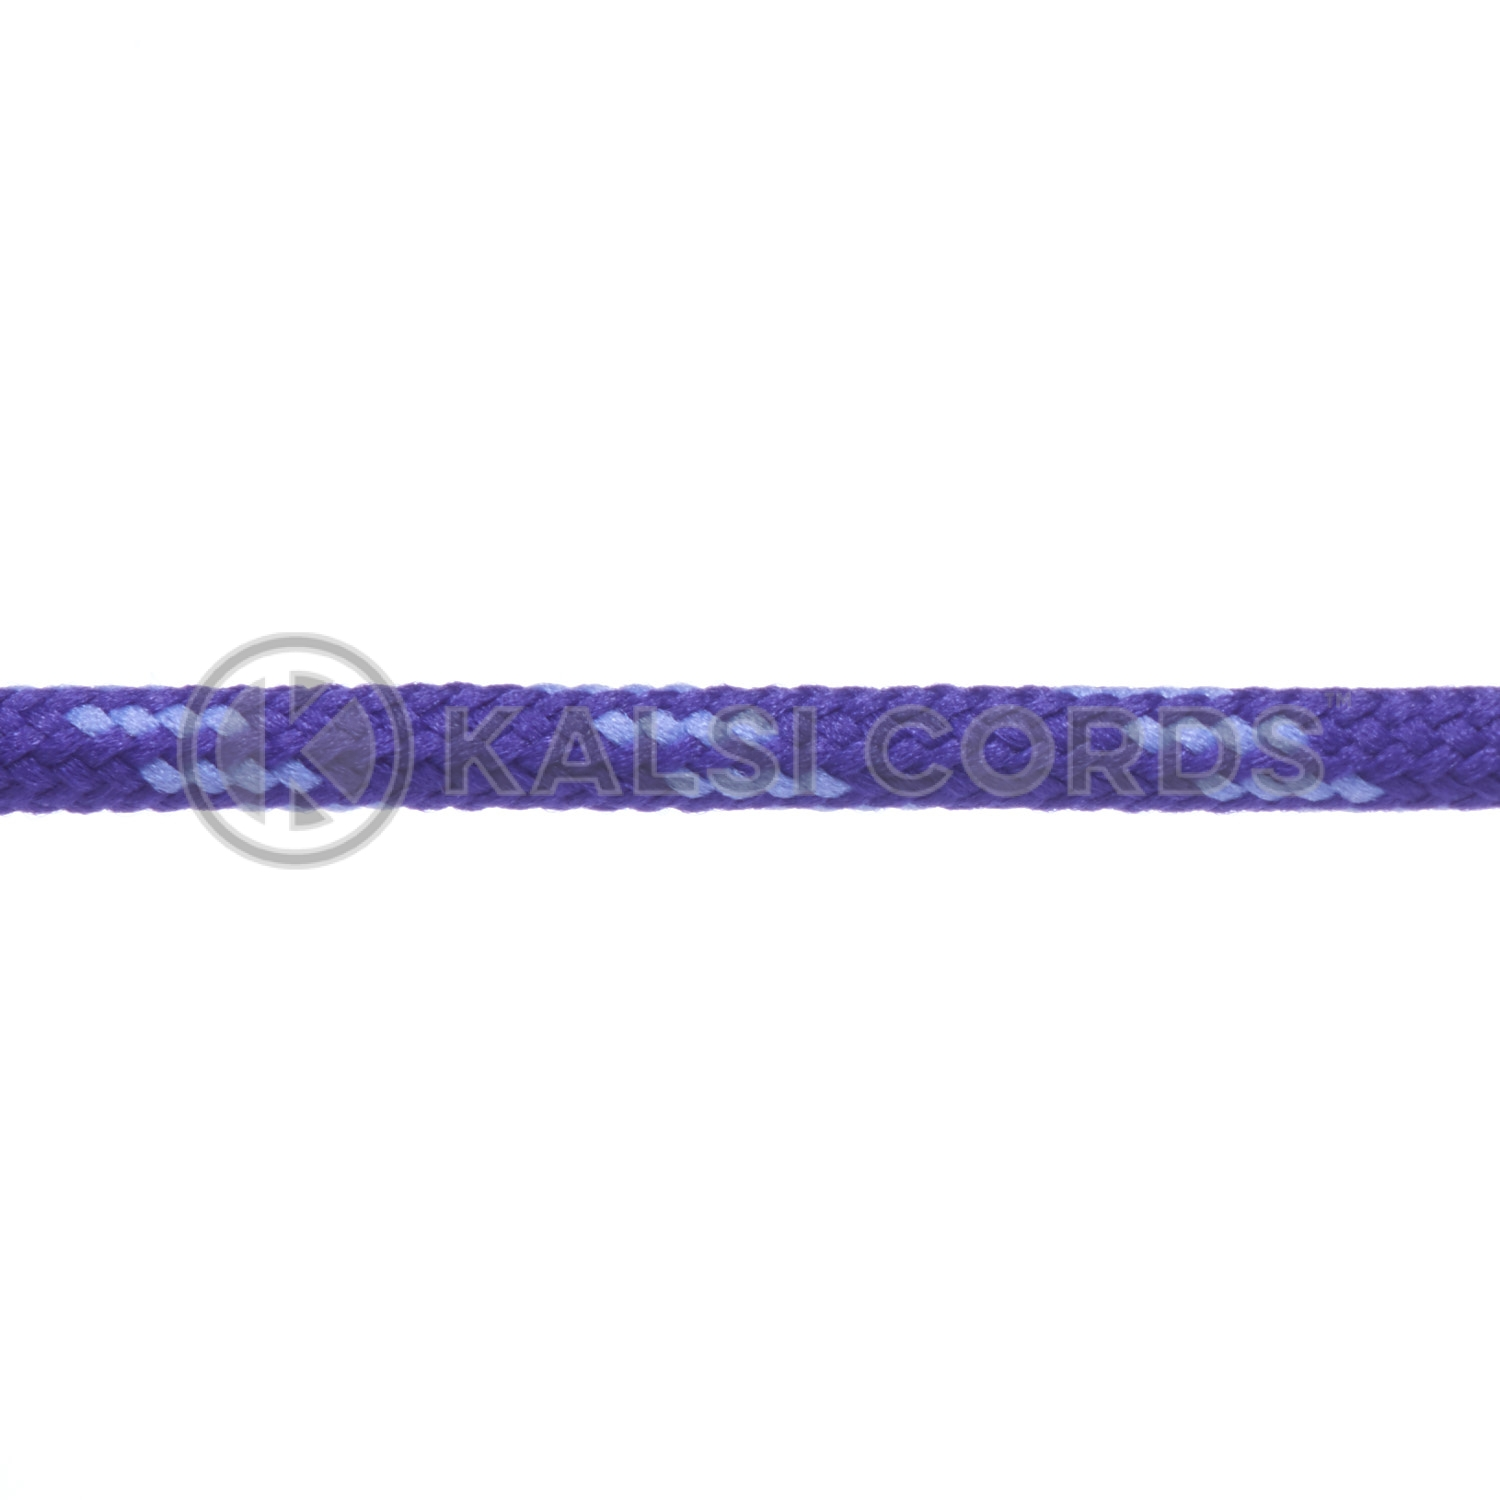 T621 5mm Round Cord Shoe Laces Purple Lilac 4 Fleck Kids Trainers Adults Hiking Walking Boots Kalsi Cords